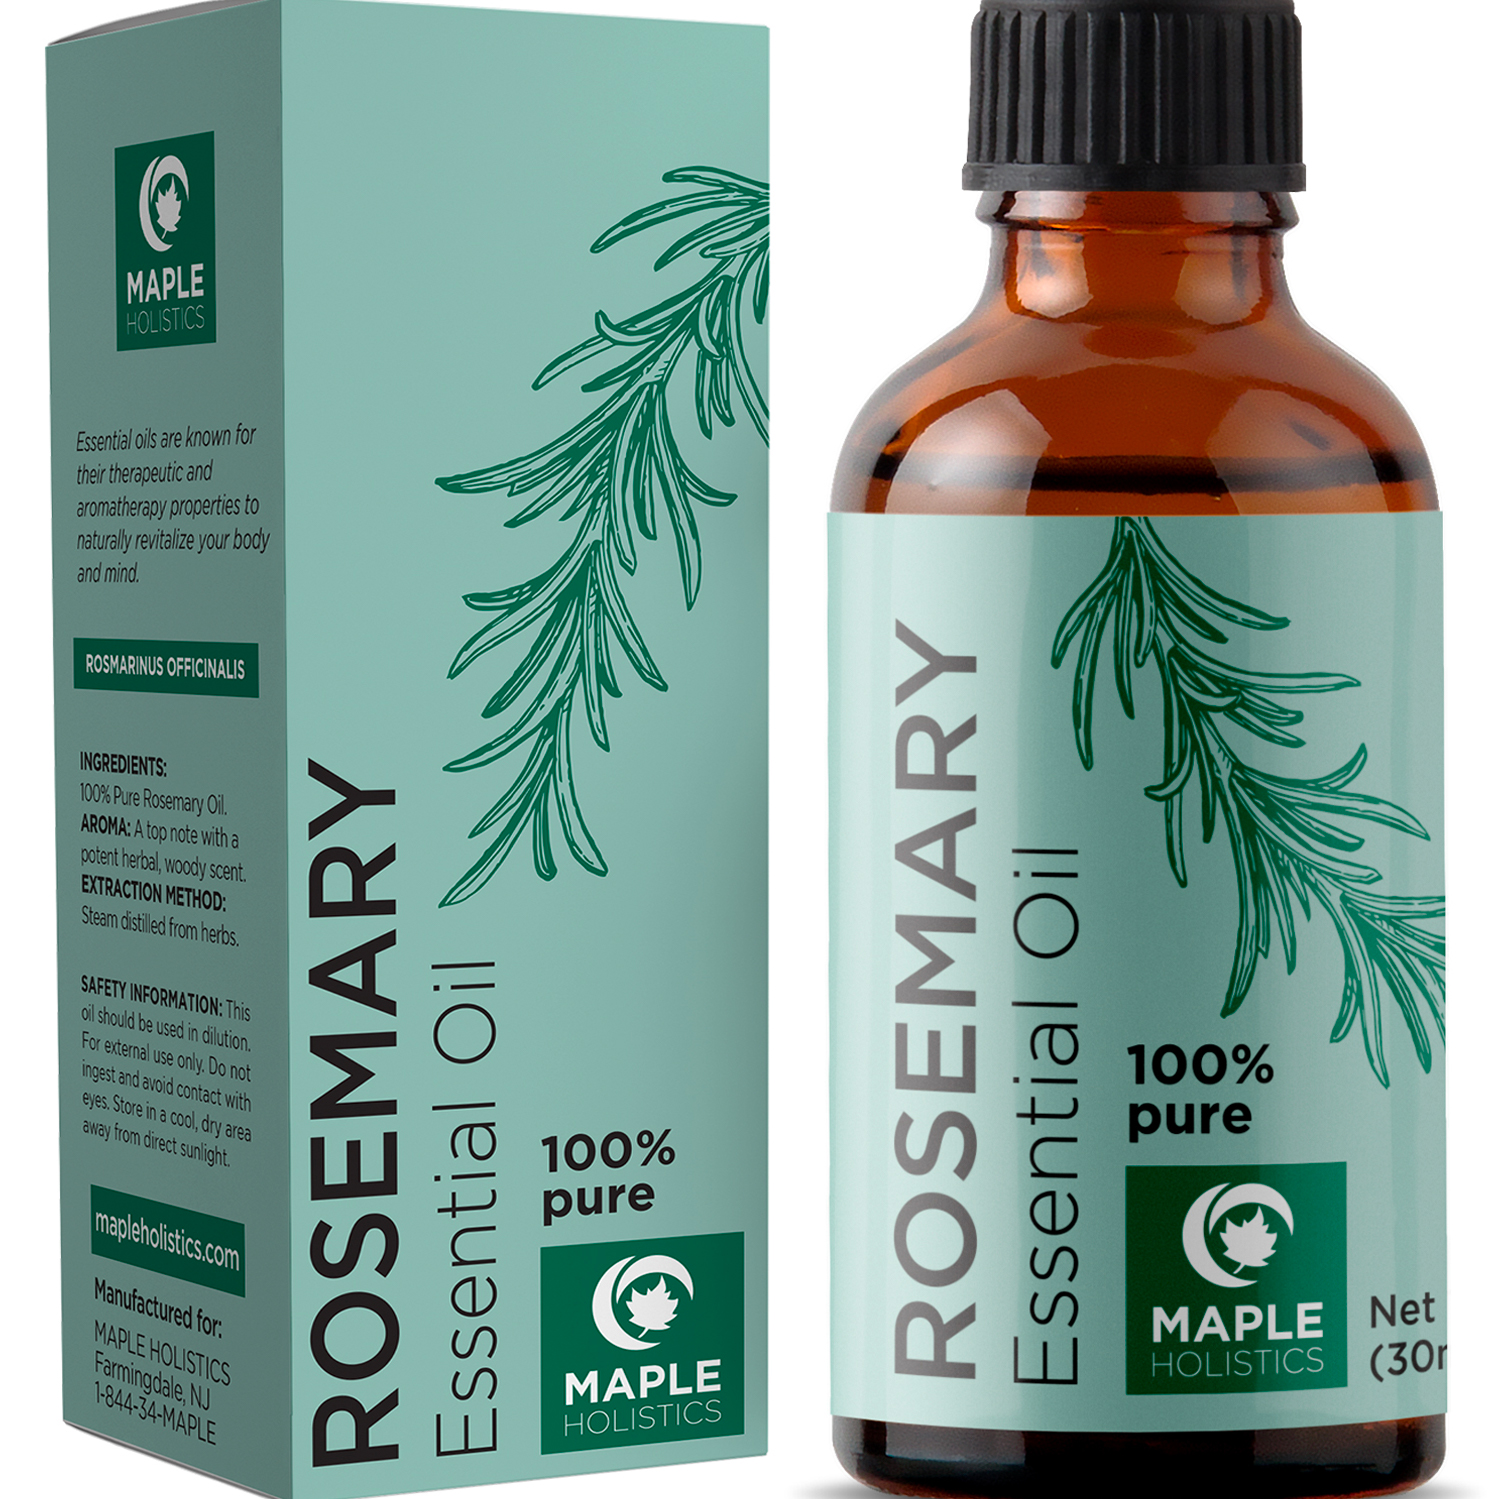 Maple Holistics Rosemary Essential Oil For Hair Growth Serum 1oz Walmart Com Walmart Com